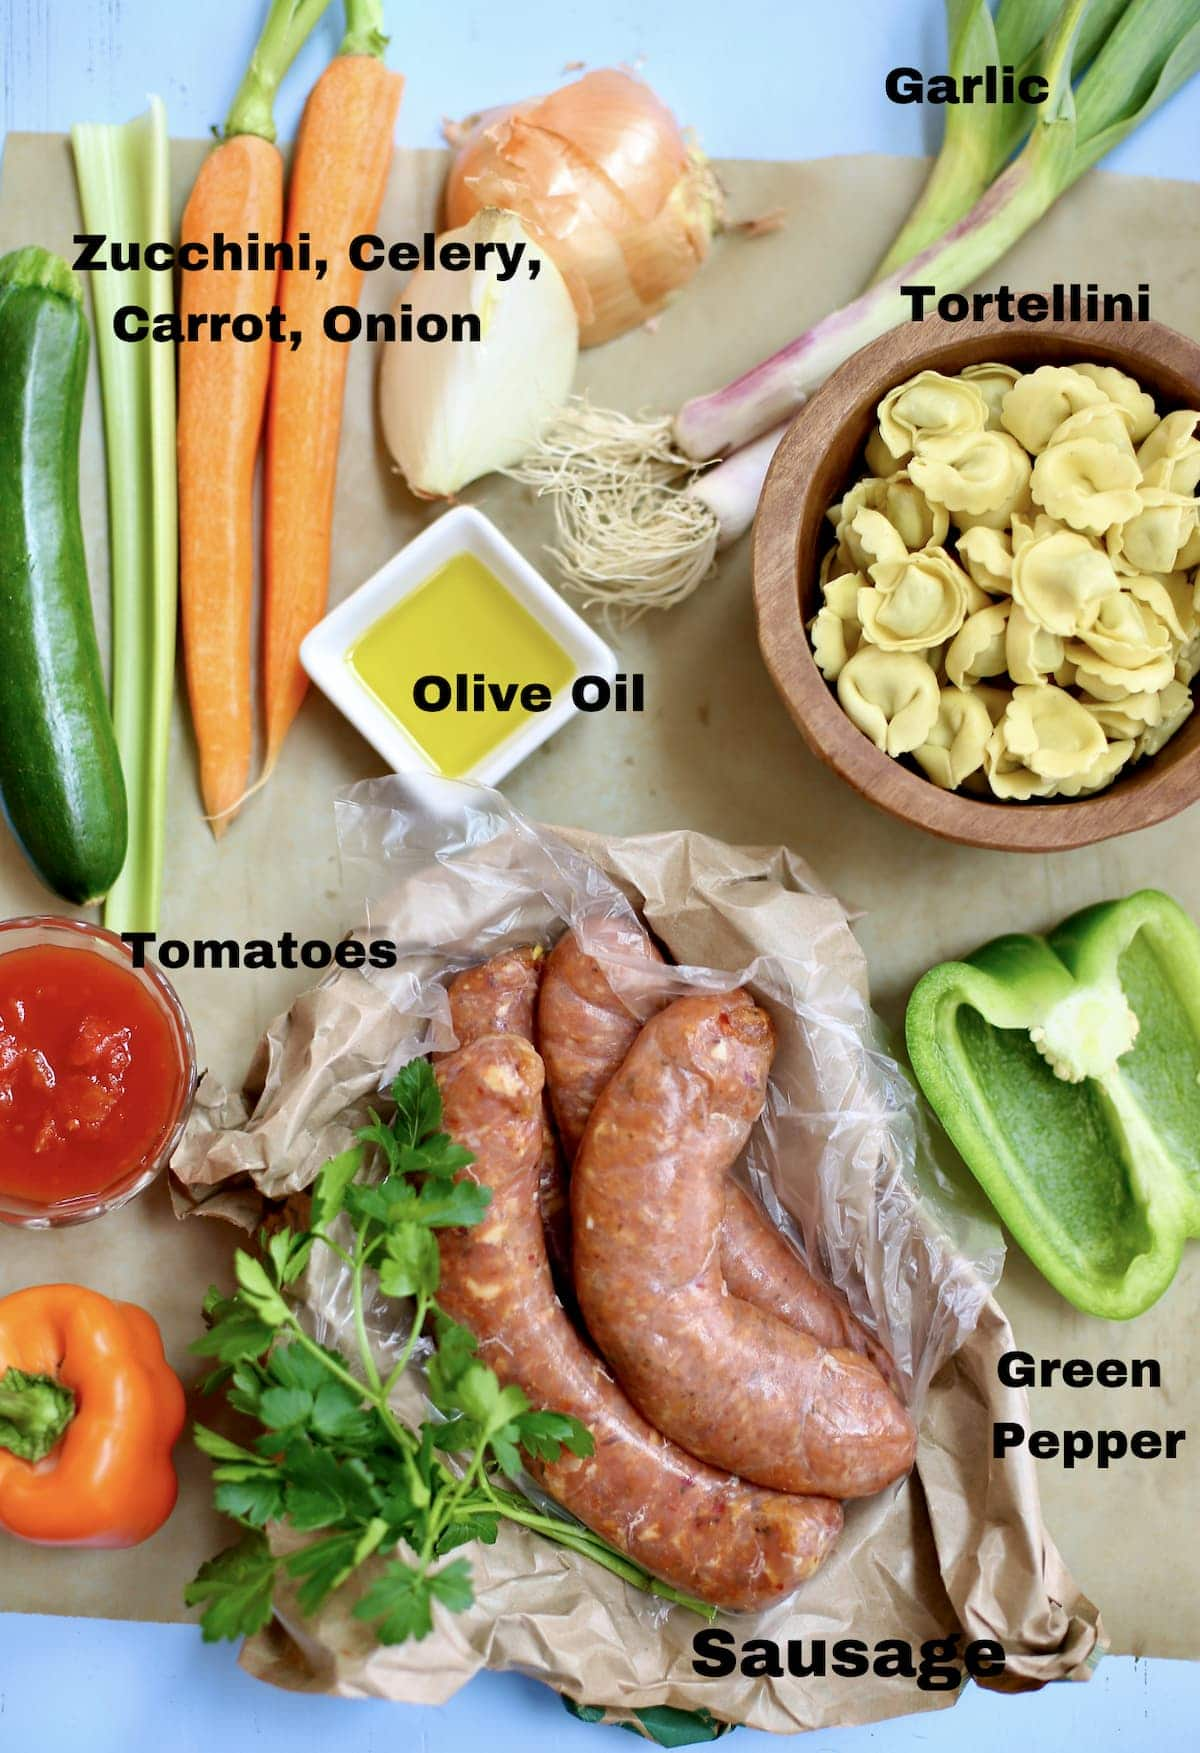 a grouping of ingredients for soup, vegeatables, tortellini and chicken sausage with a text overlay saying what the ingredients are